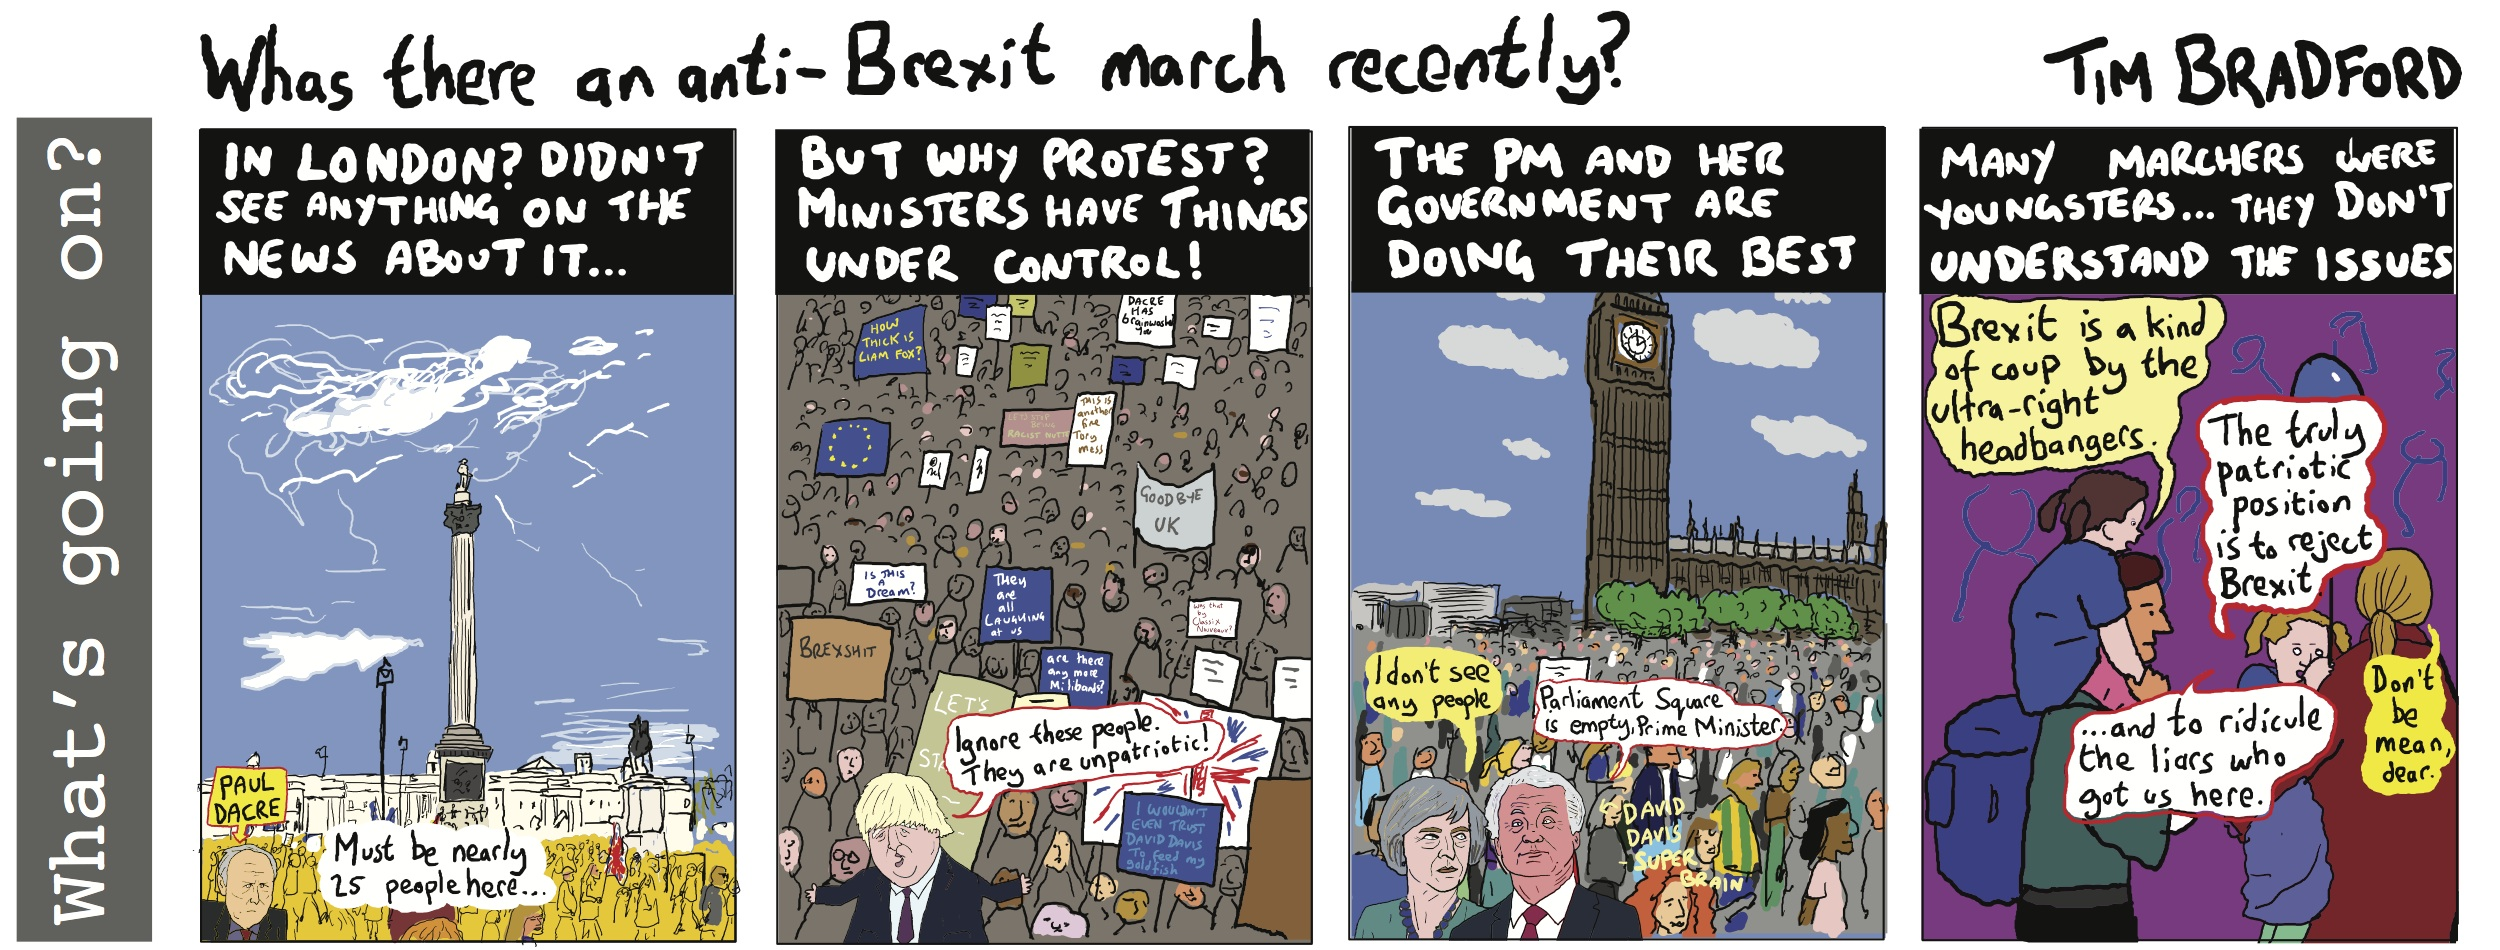 Copy of Was there an anti-Brexit march recently? - 28/03/17